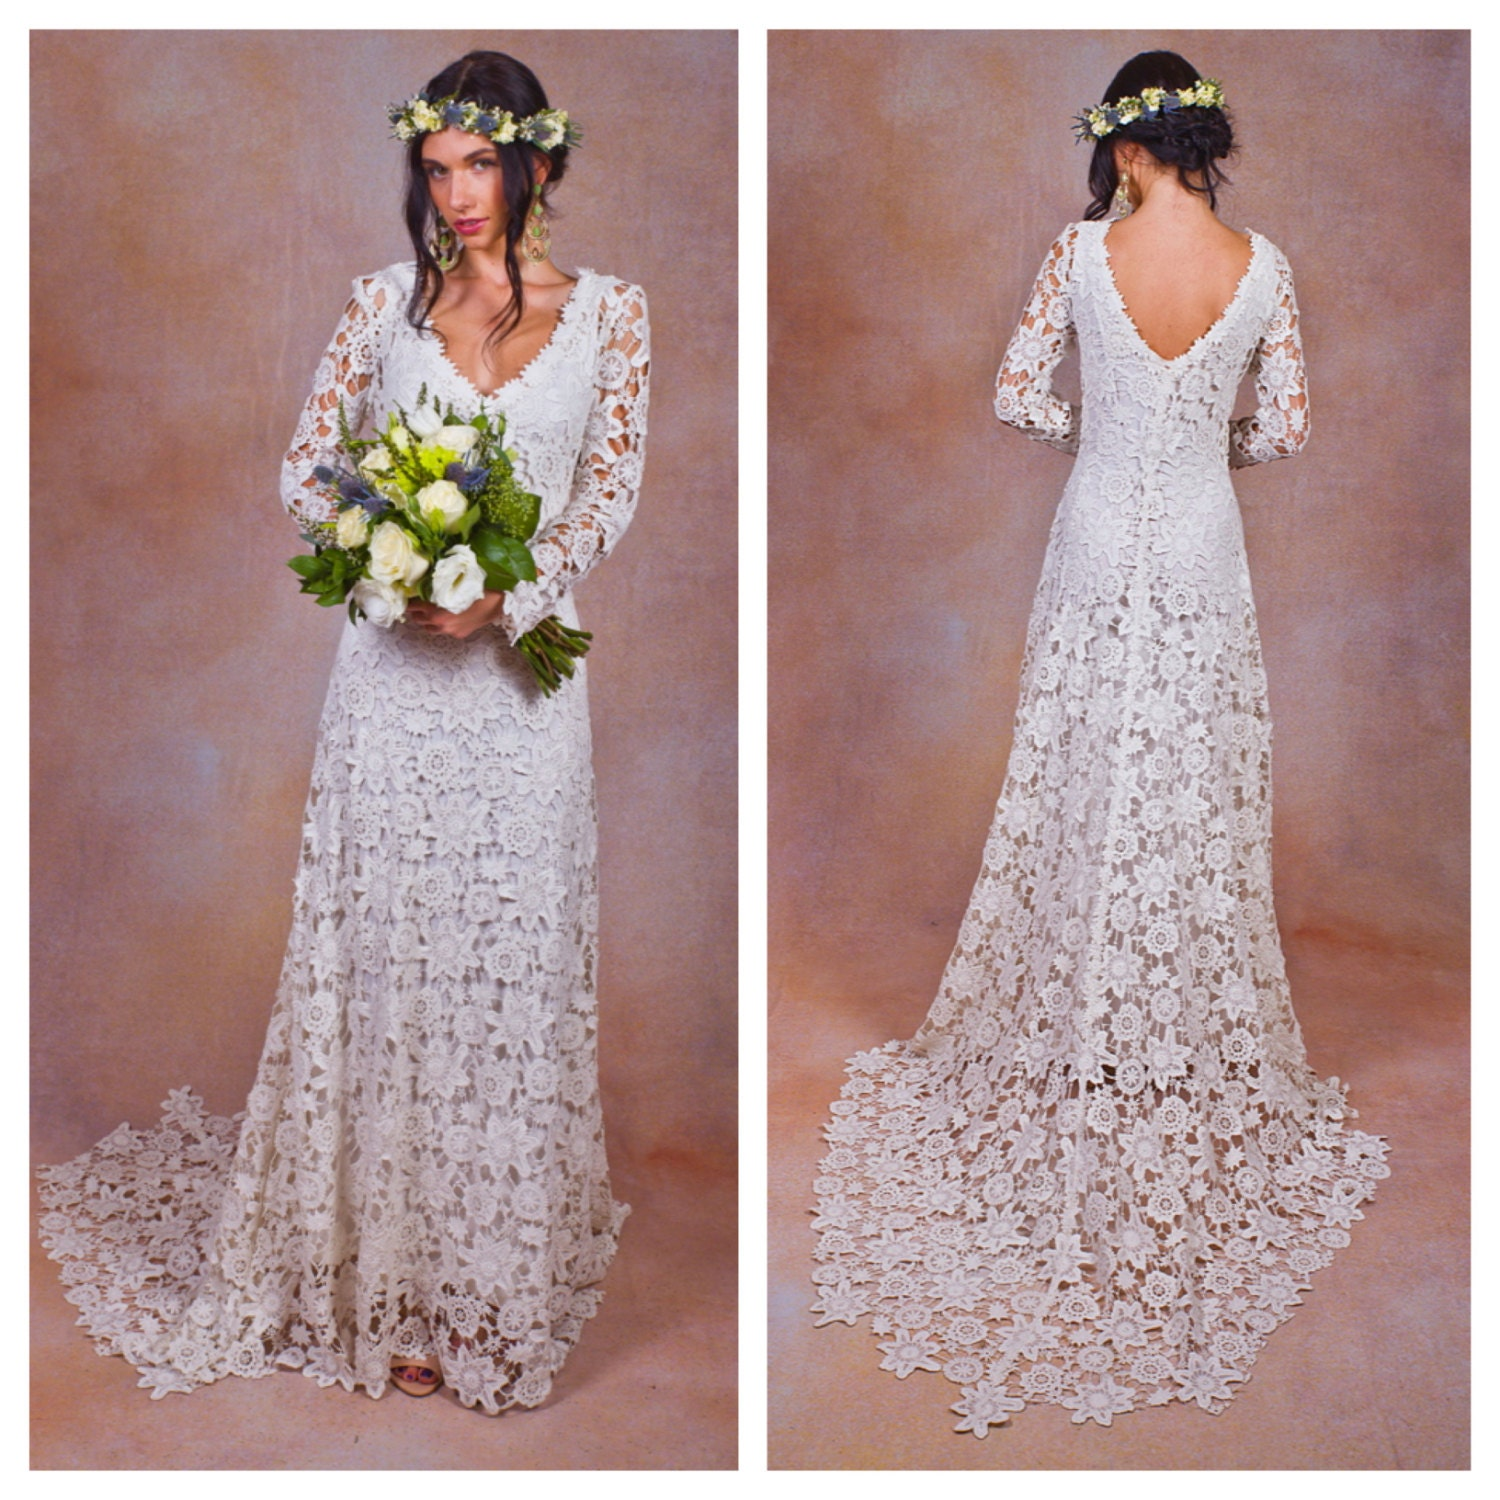 Hippie Bohemian Wedding Dress Los Angeles Rustic BOHO WEDDING DRESS